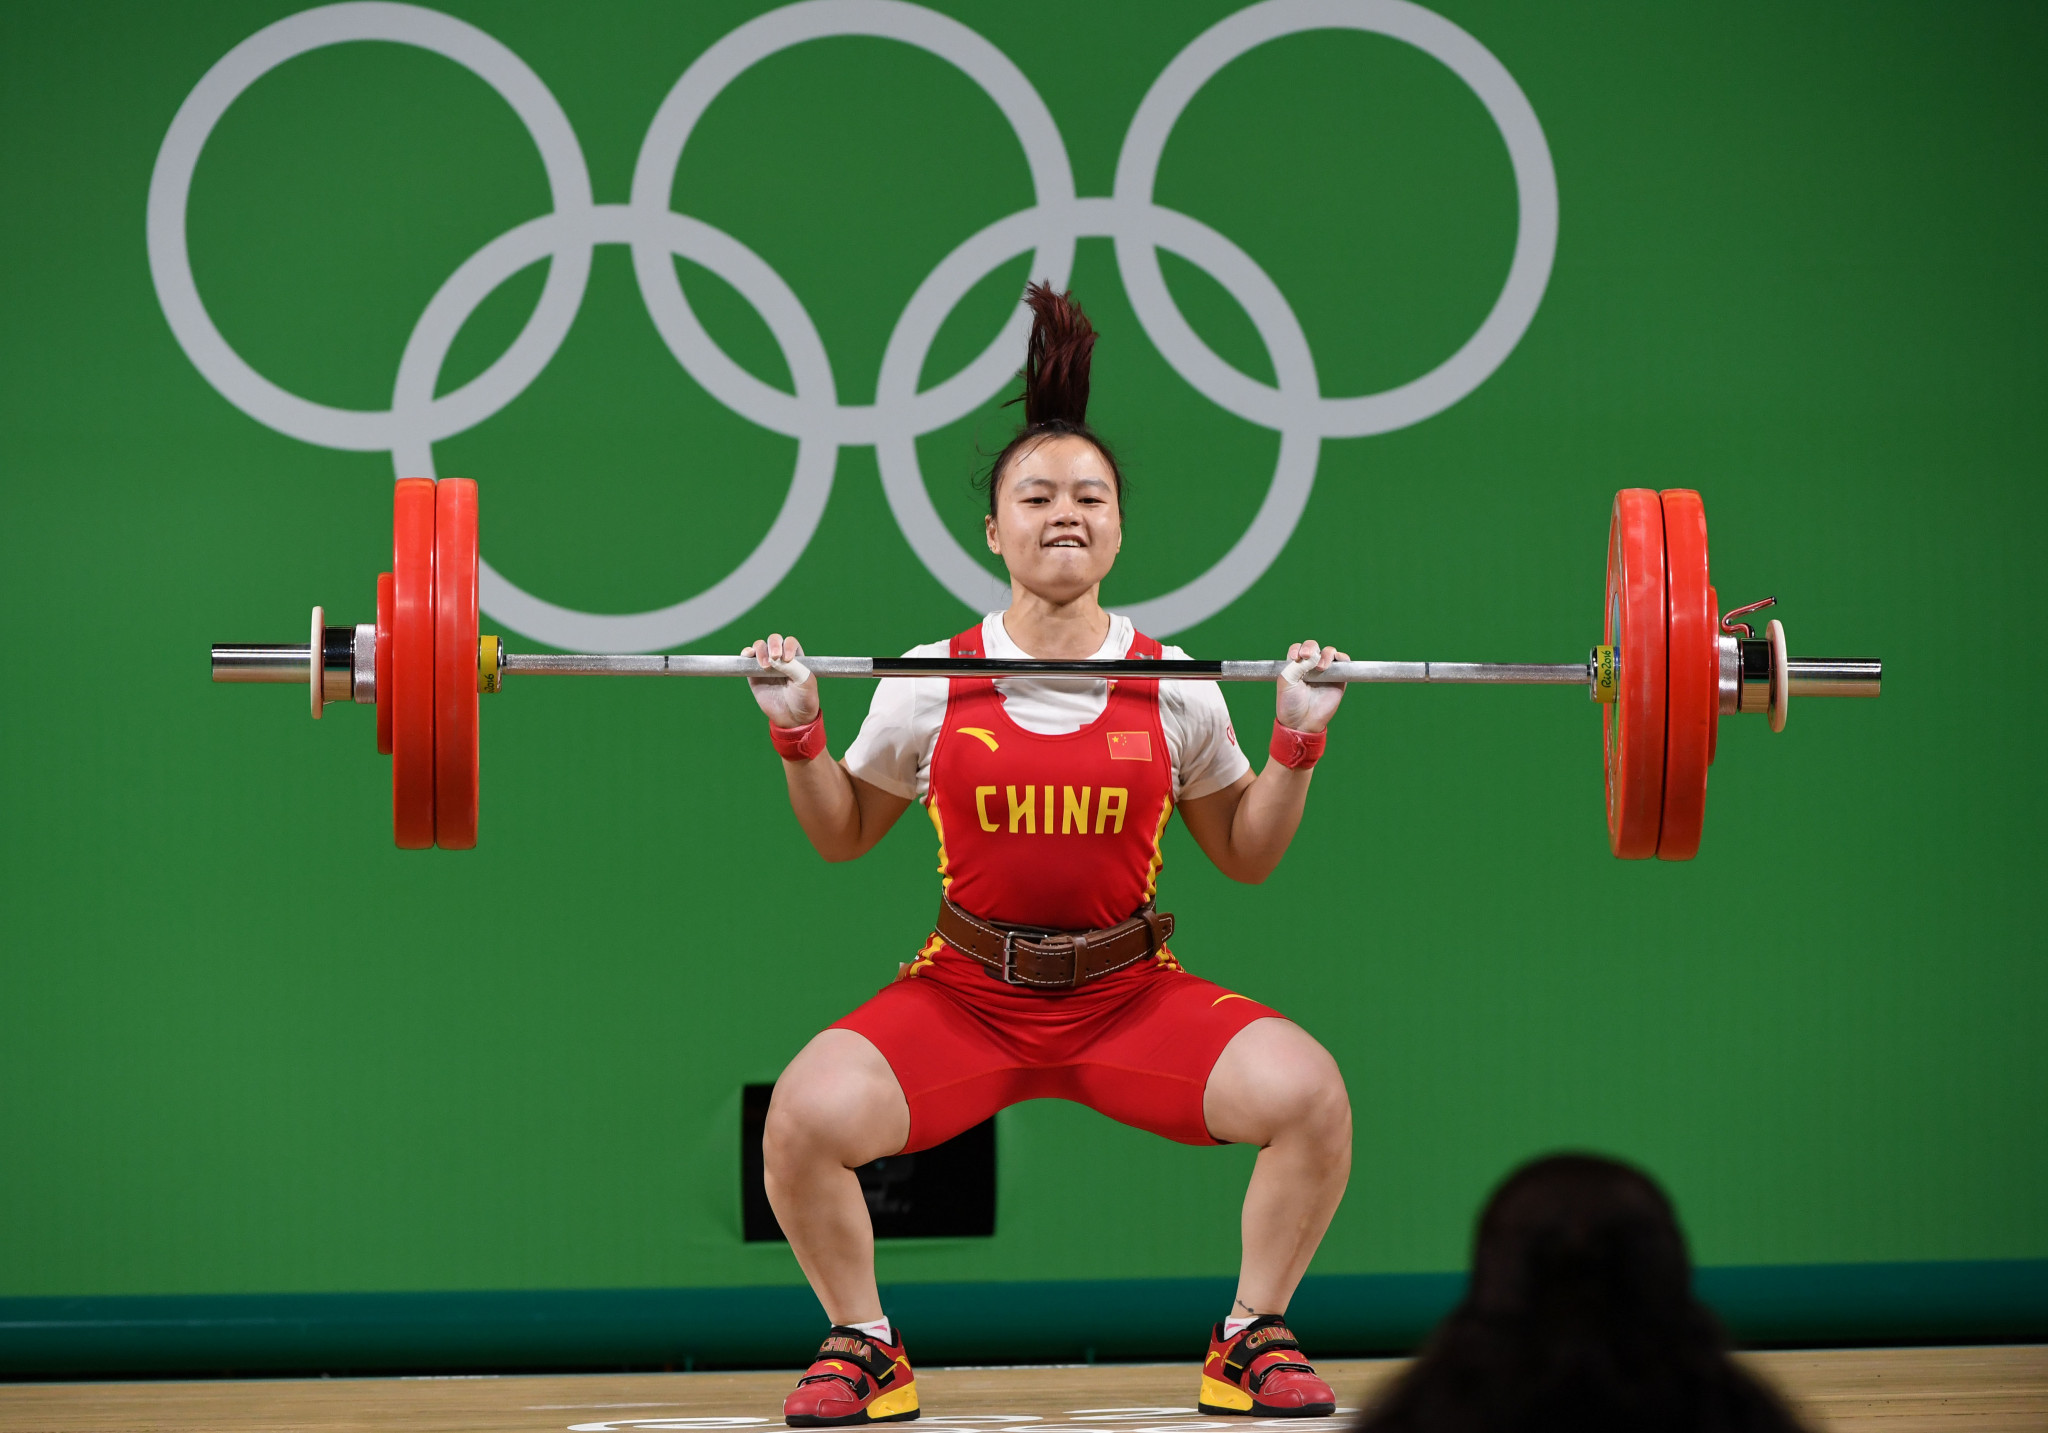 Li Yajun, in line to be upgraded to world champion, won a silver medal today ©Getty Images